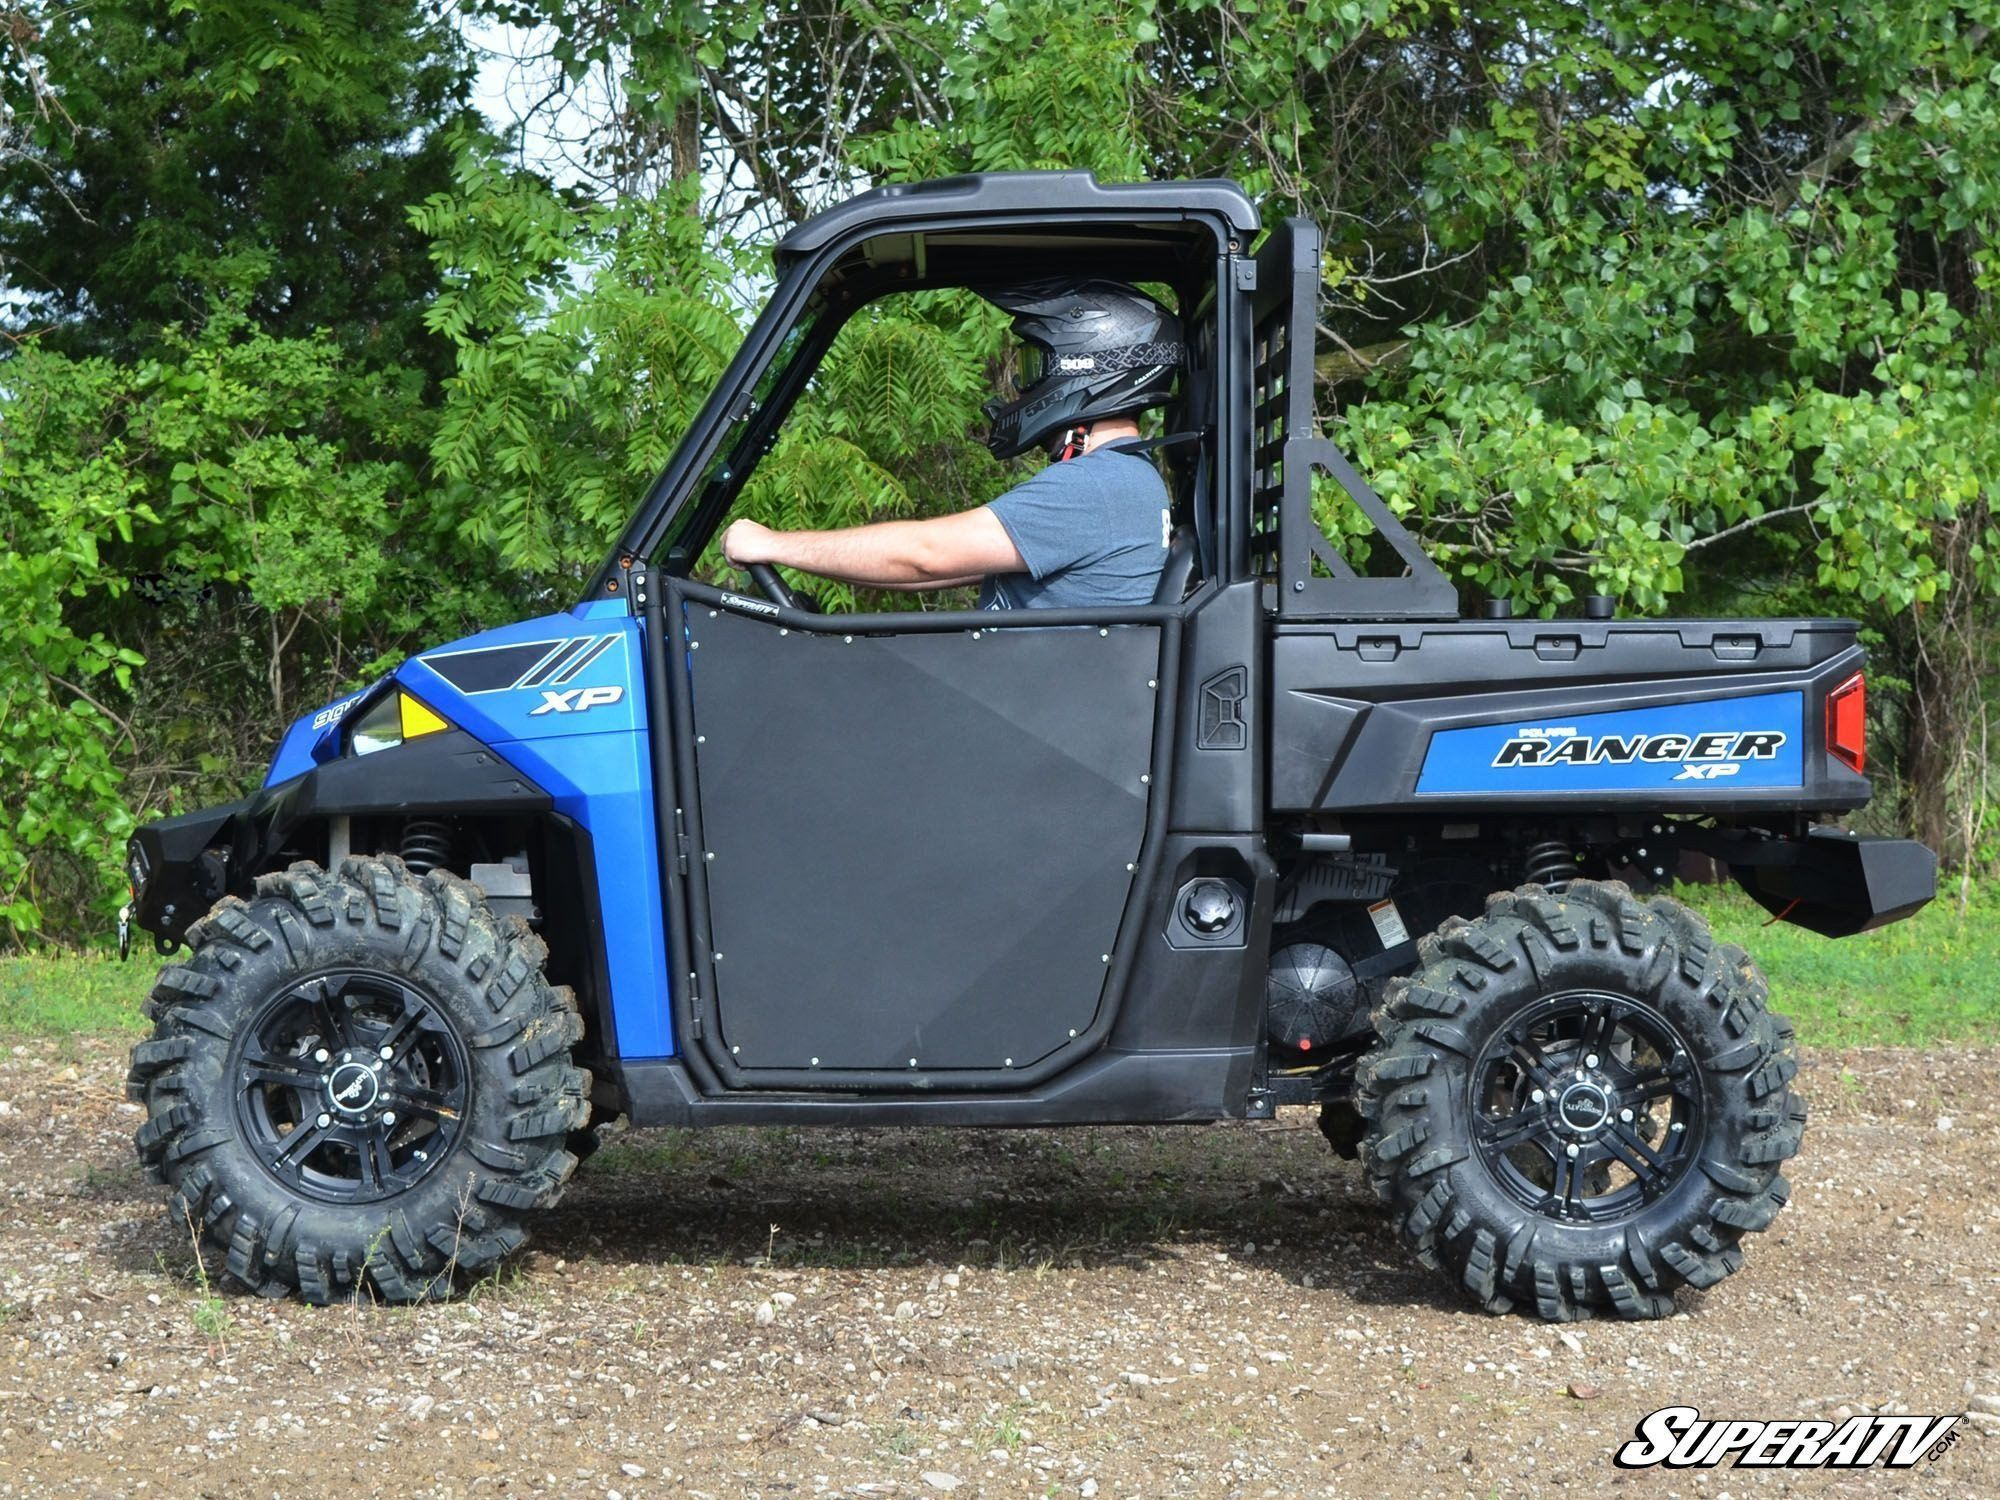 Details Ranger Fullsize Headache Rack Why We Make It Help Protect Yourself And Your Passengers In Your Polaris Ranger Ranger Polaris Ranger Window Protection